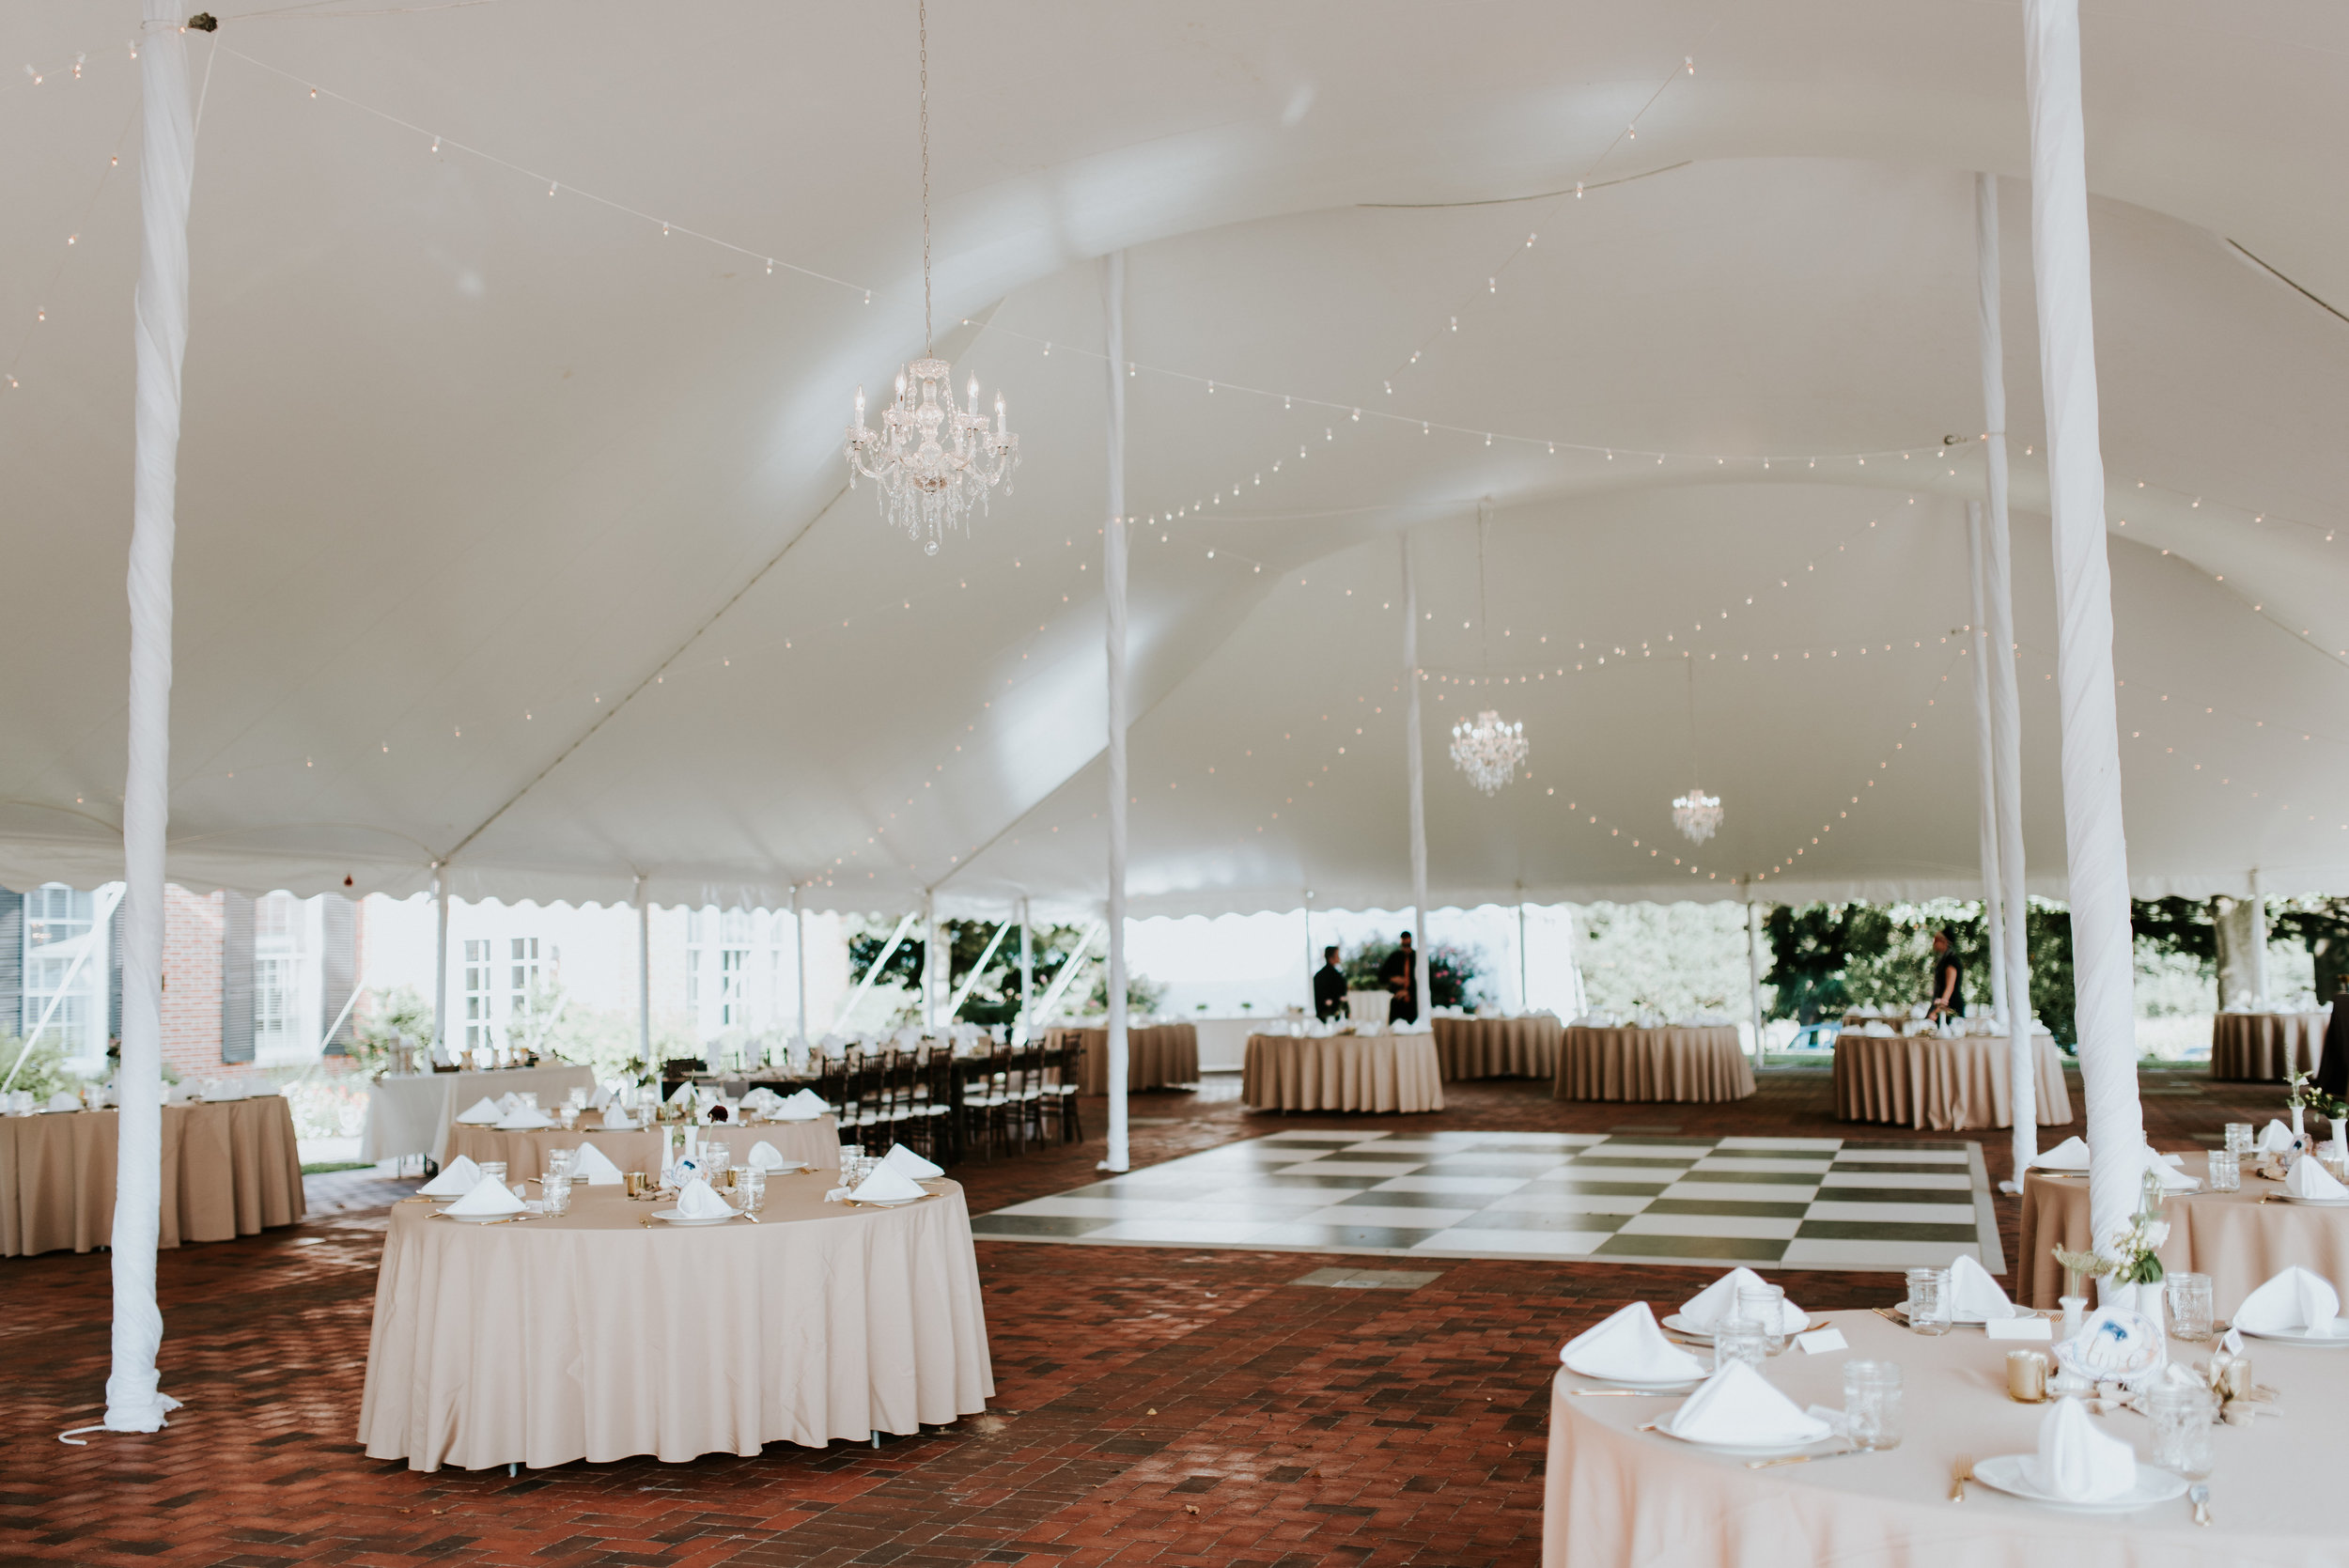 Rustic Oyster Themed Eastern Shore Maryland Outdoor Wedding by East Made Event Company Wedding Planner and Bekah Kay Creative541.jpg